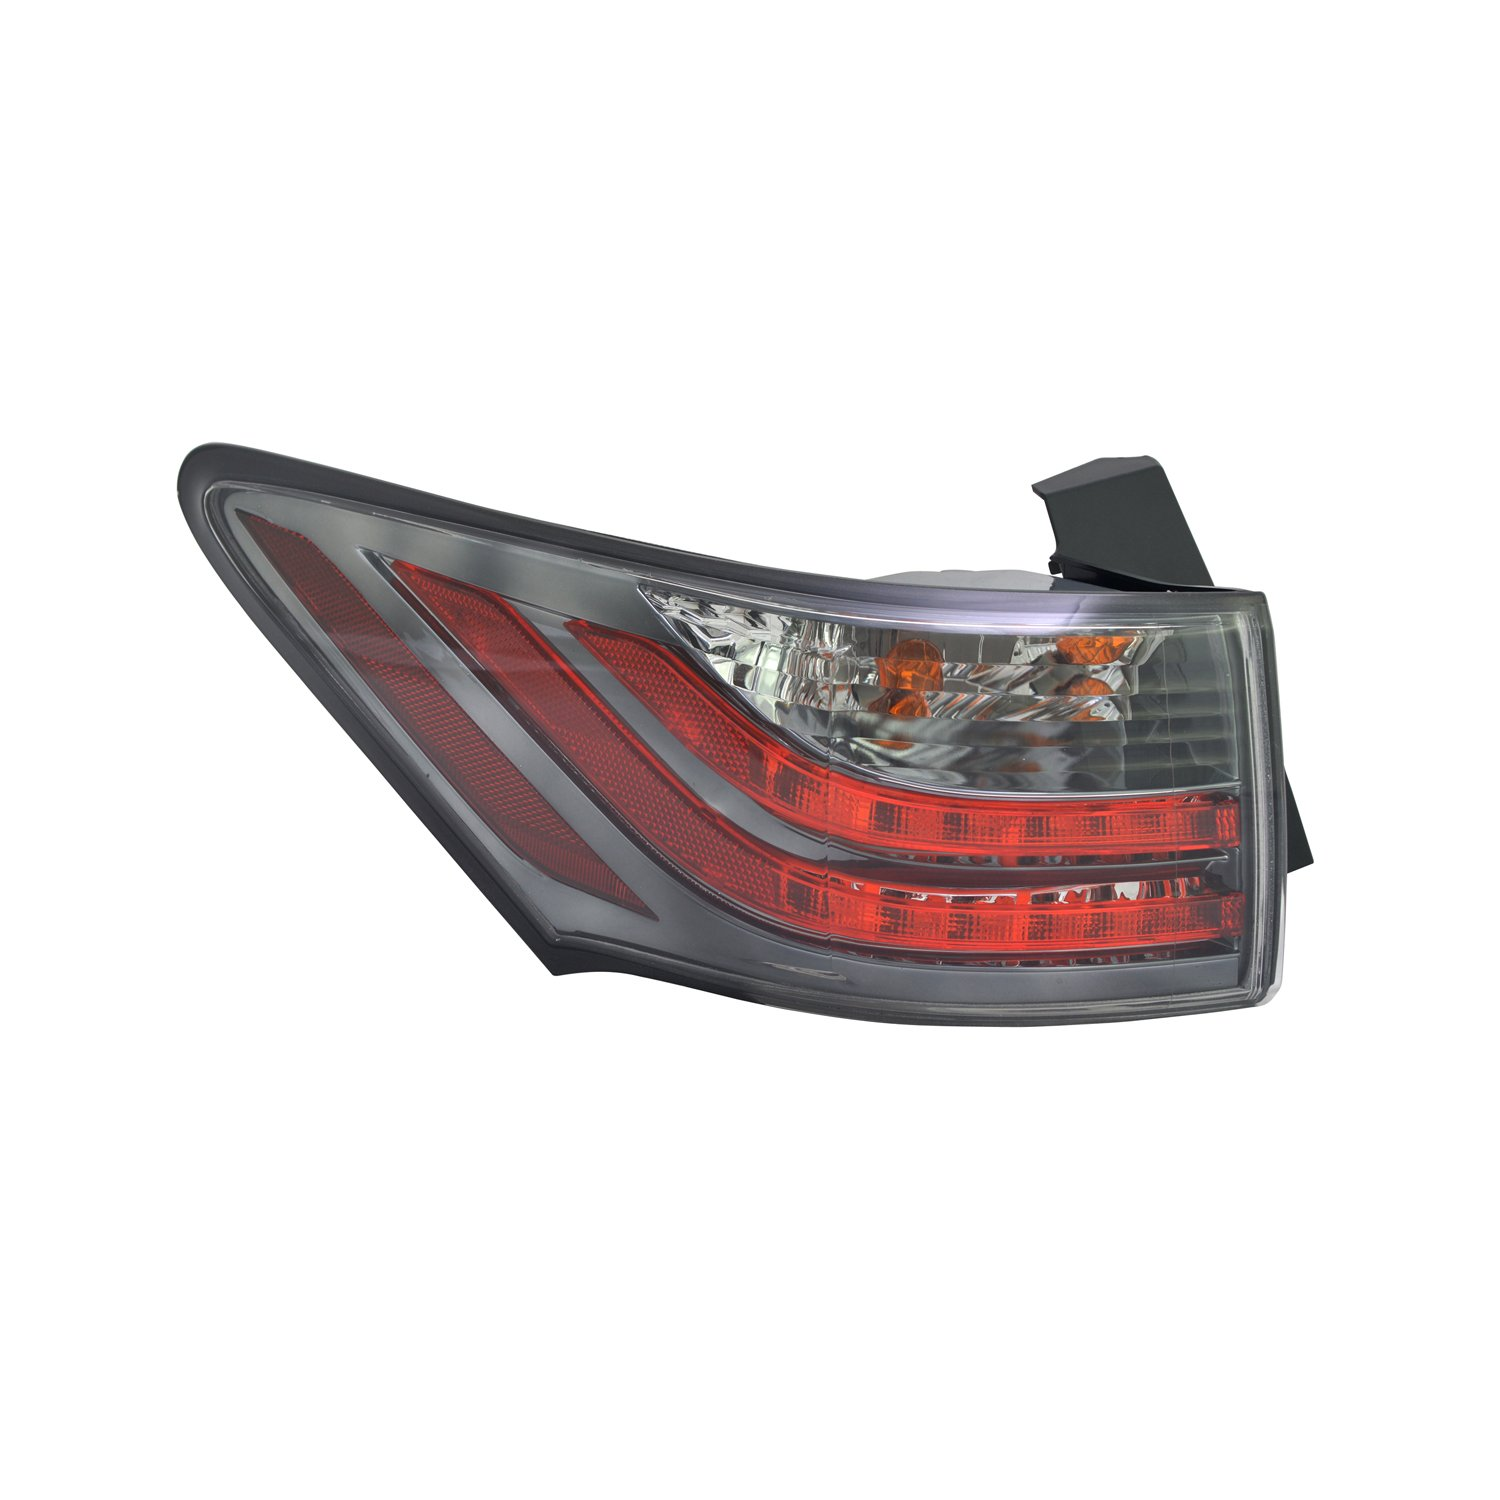 TYC 11-6270-00-1 Lexus Ct200H Replacement Tail Lamp